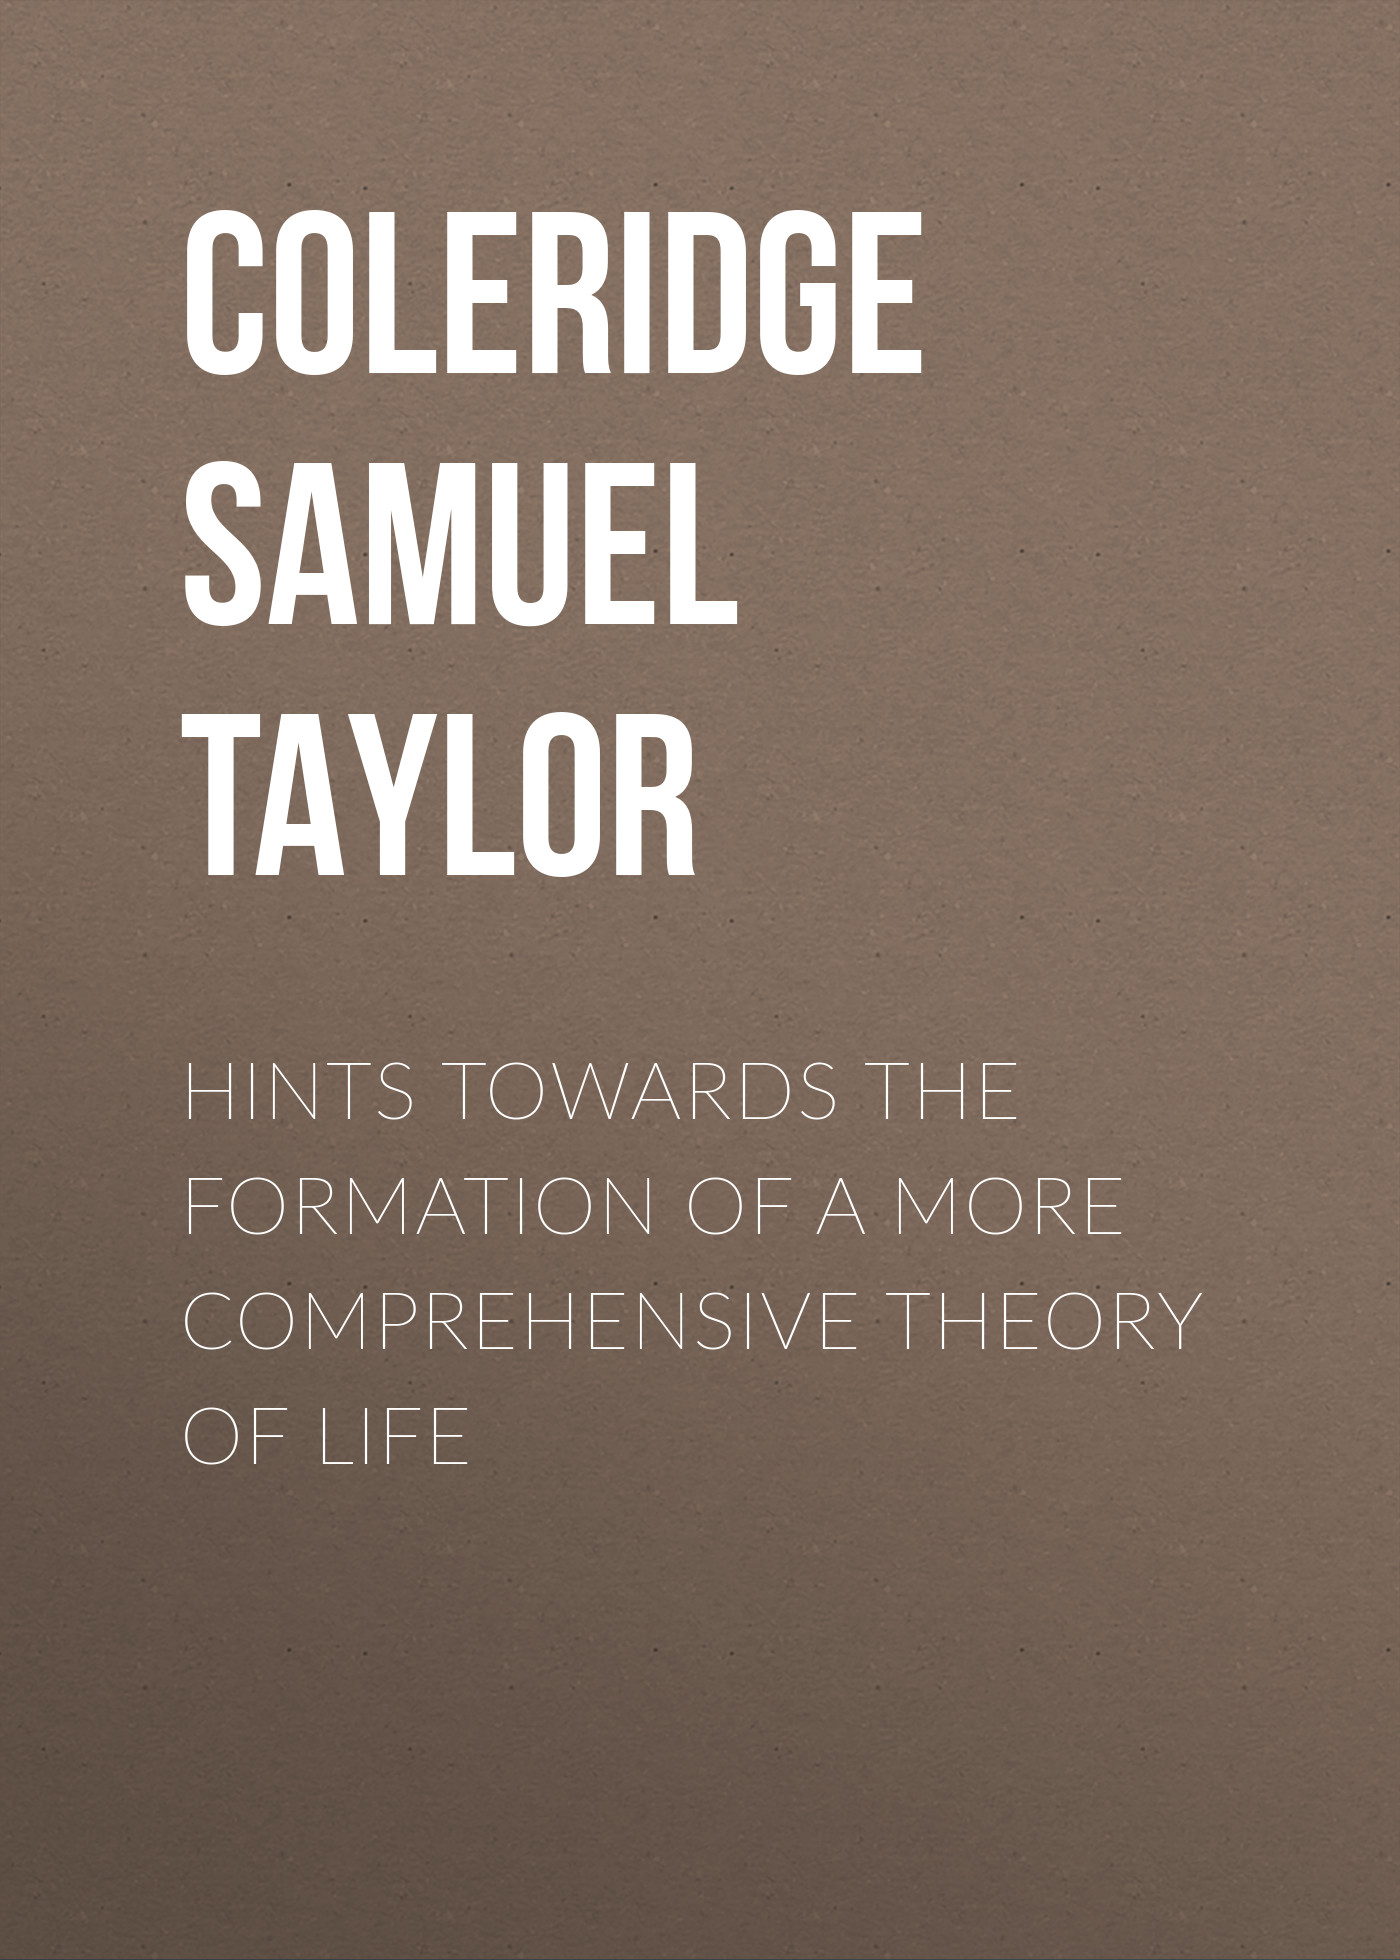 Coleridge Samuel Taylor Hints towards the formation of a more comprehensive theory of life formation formation look at the powerful people